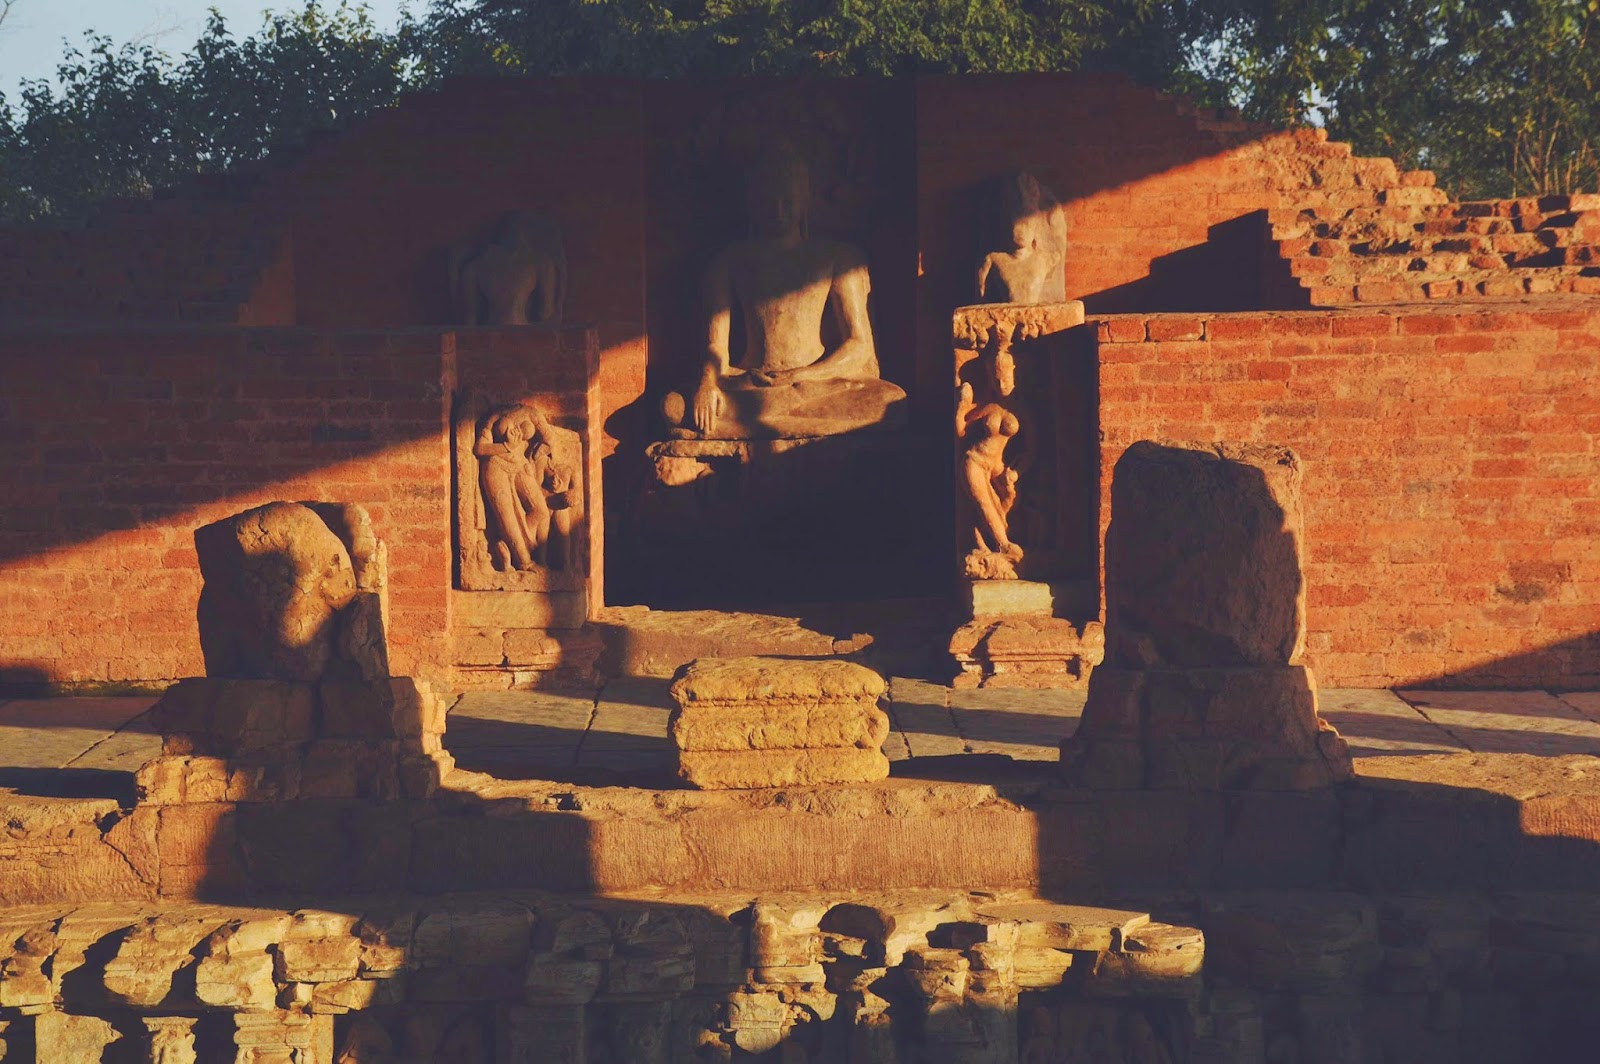 sirpur chhattisgarh budh vihar carvings travel tourism